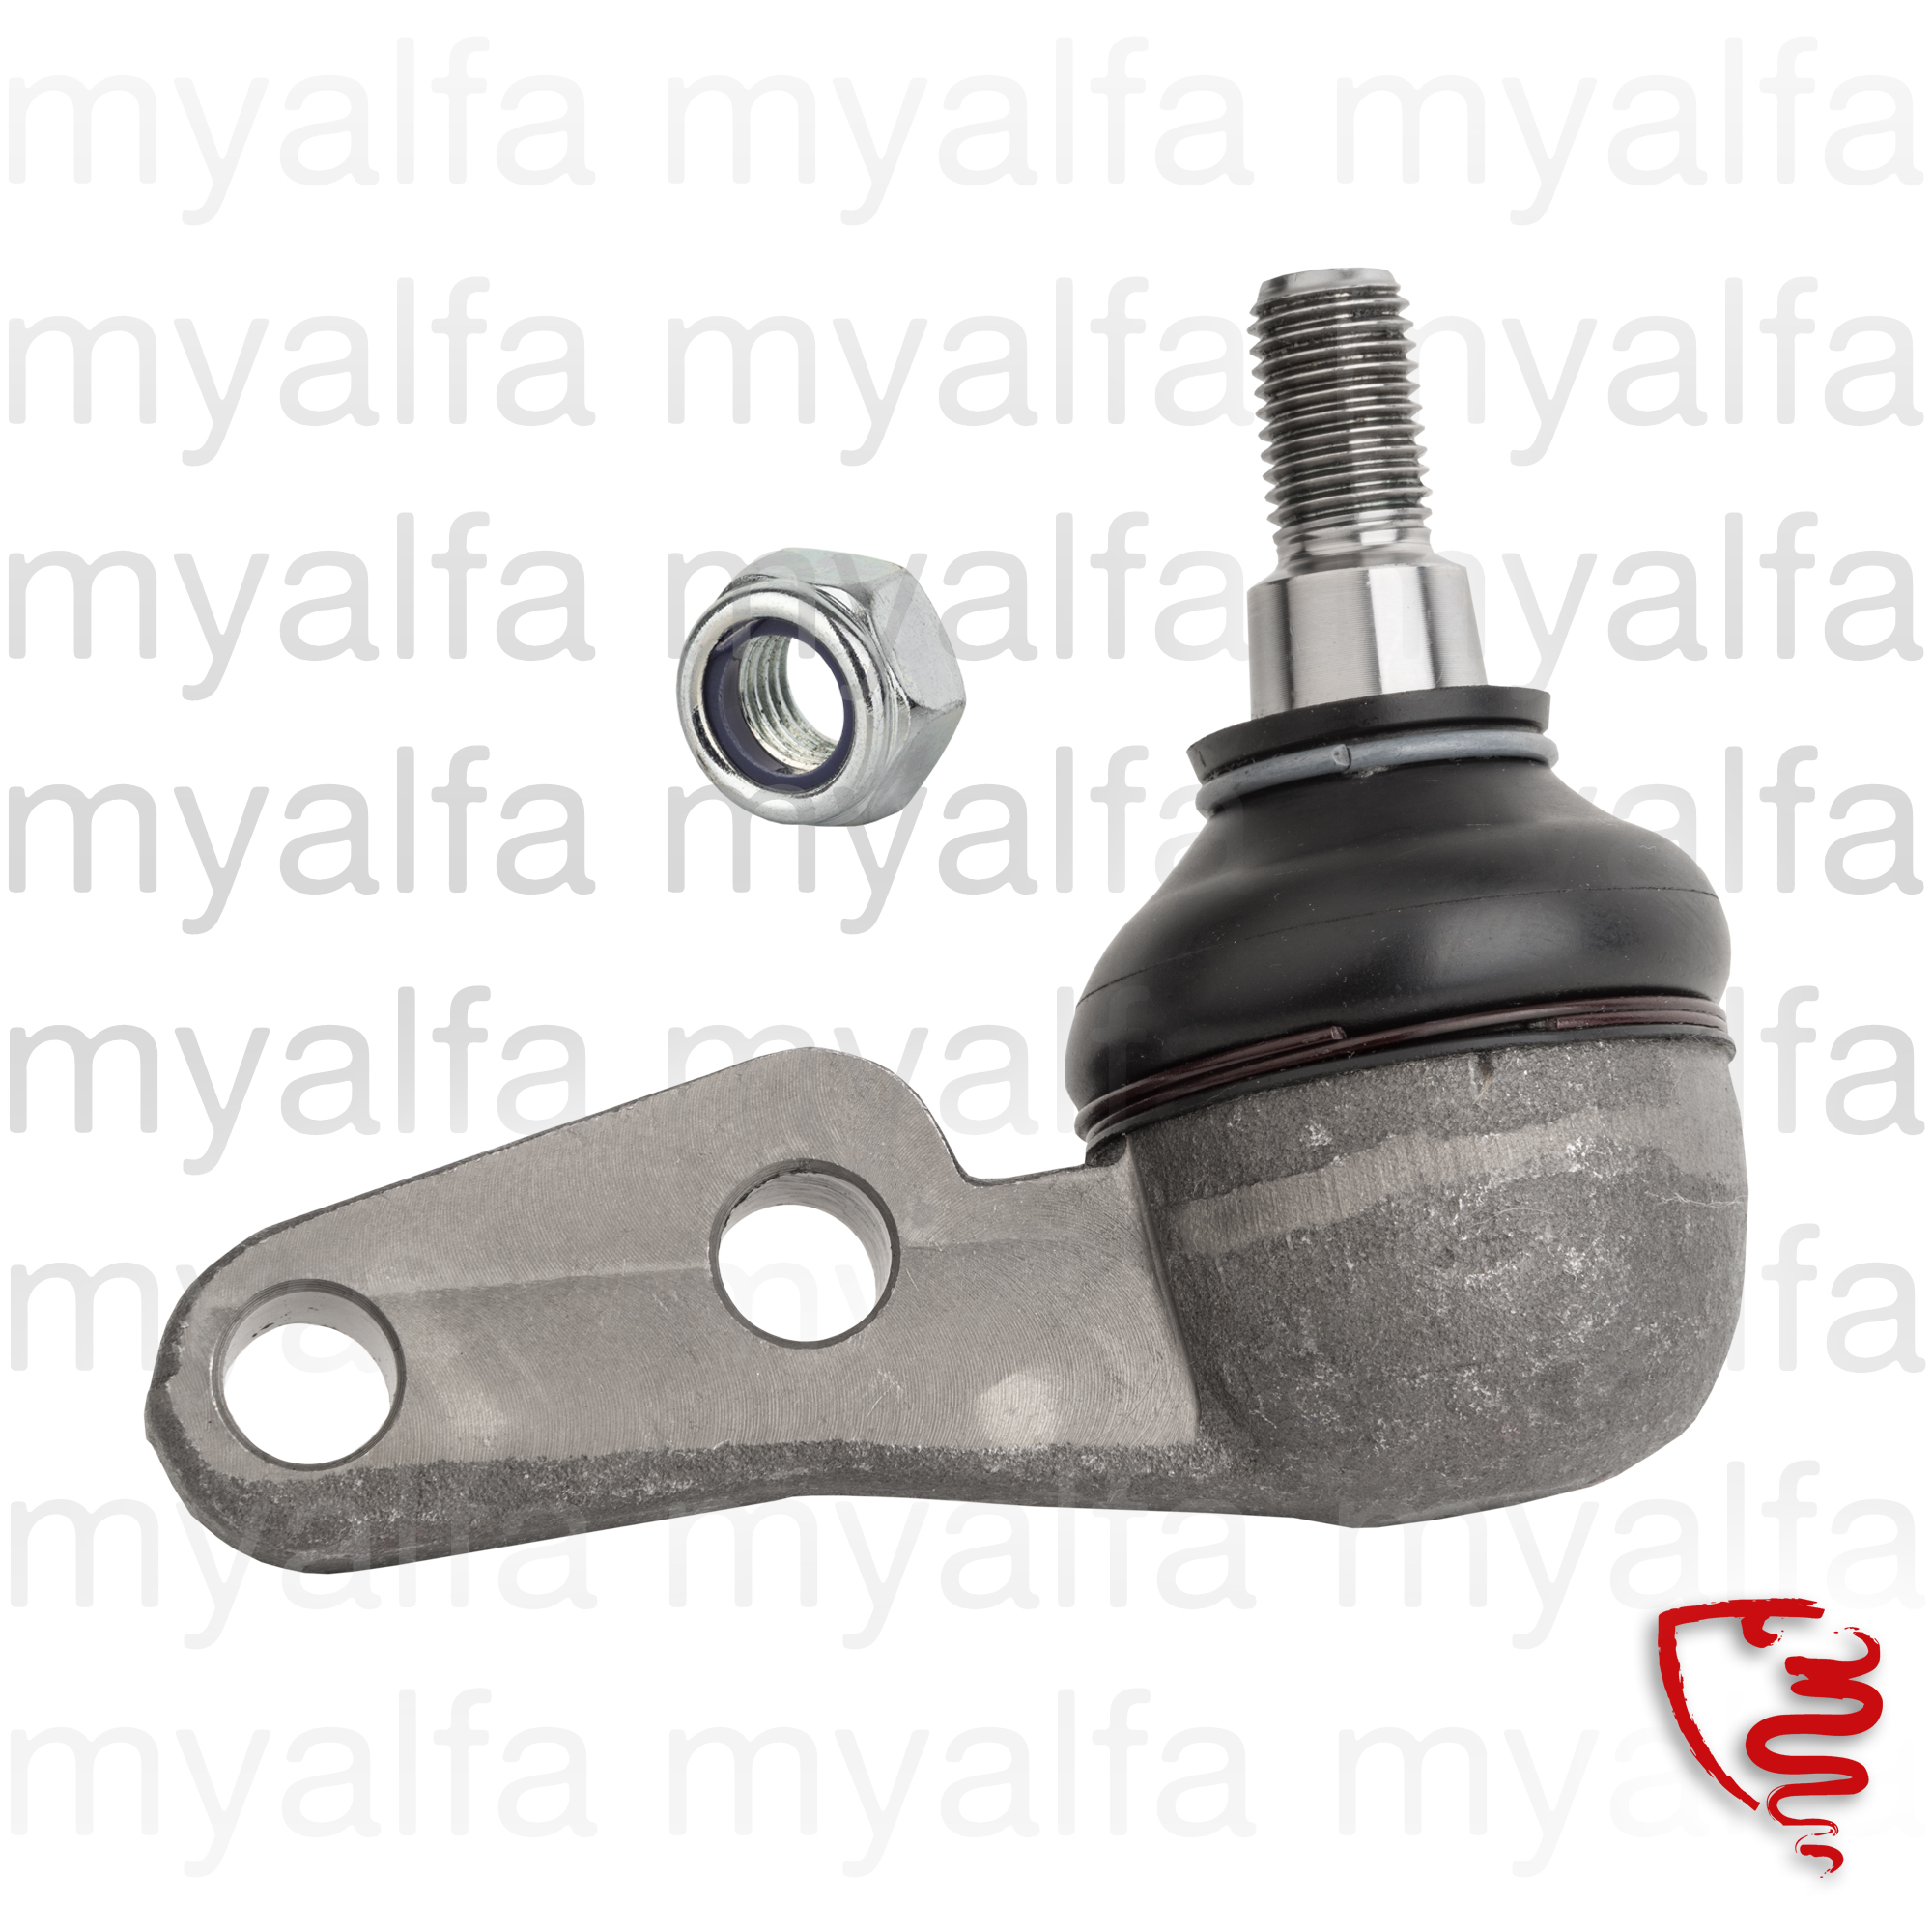 Ball joints of the lower suspension triangle for 105/115, Chassis Mount, Front Suspension, Arms/Bushings